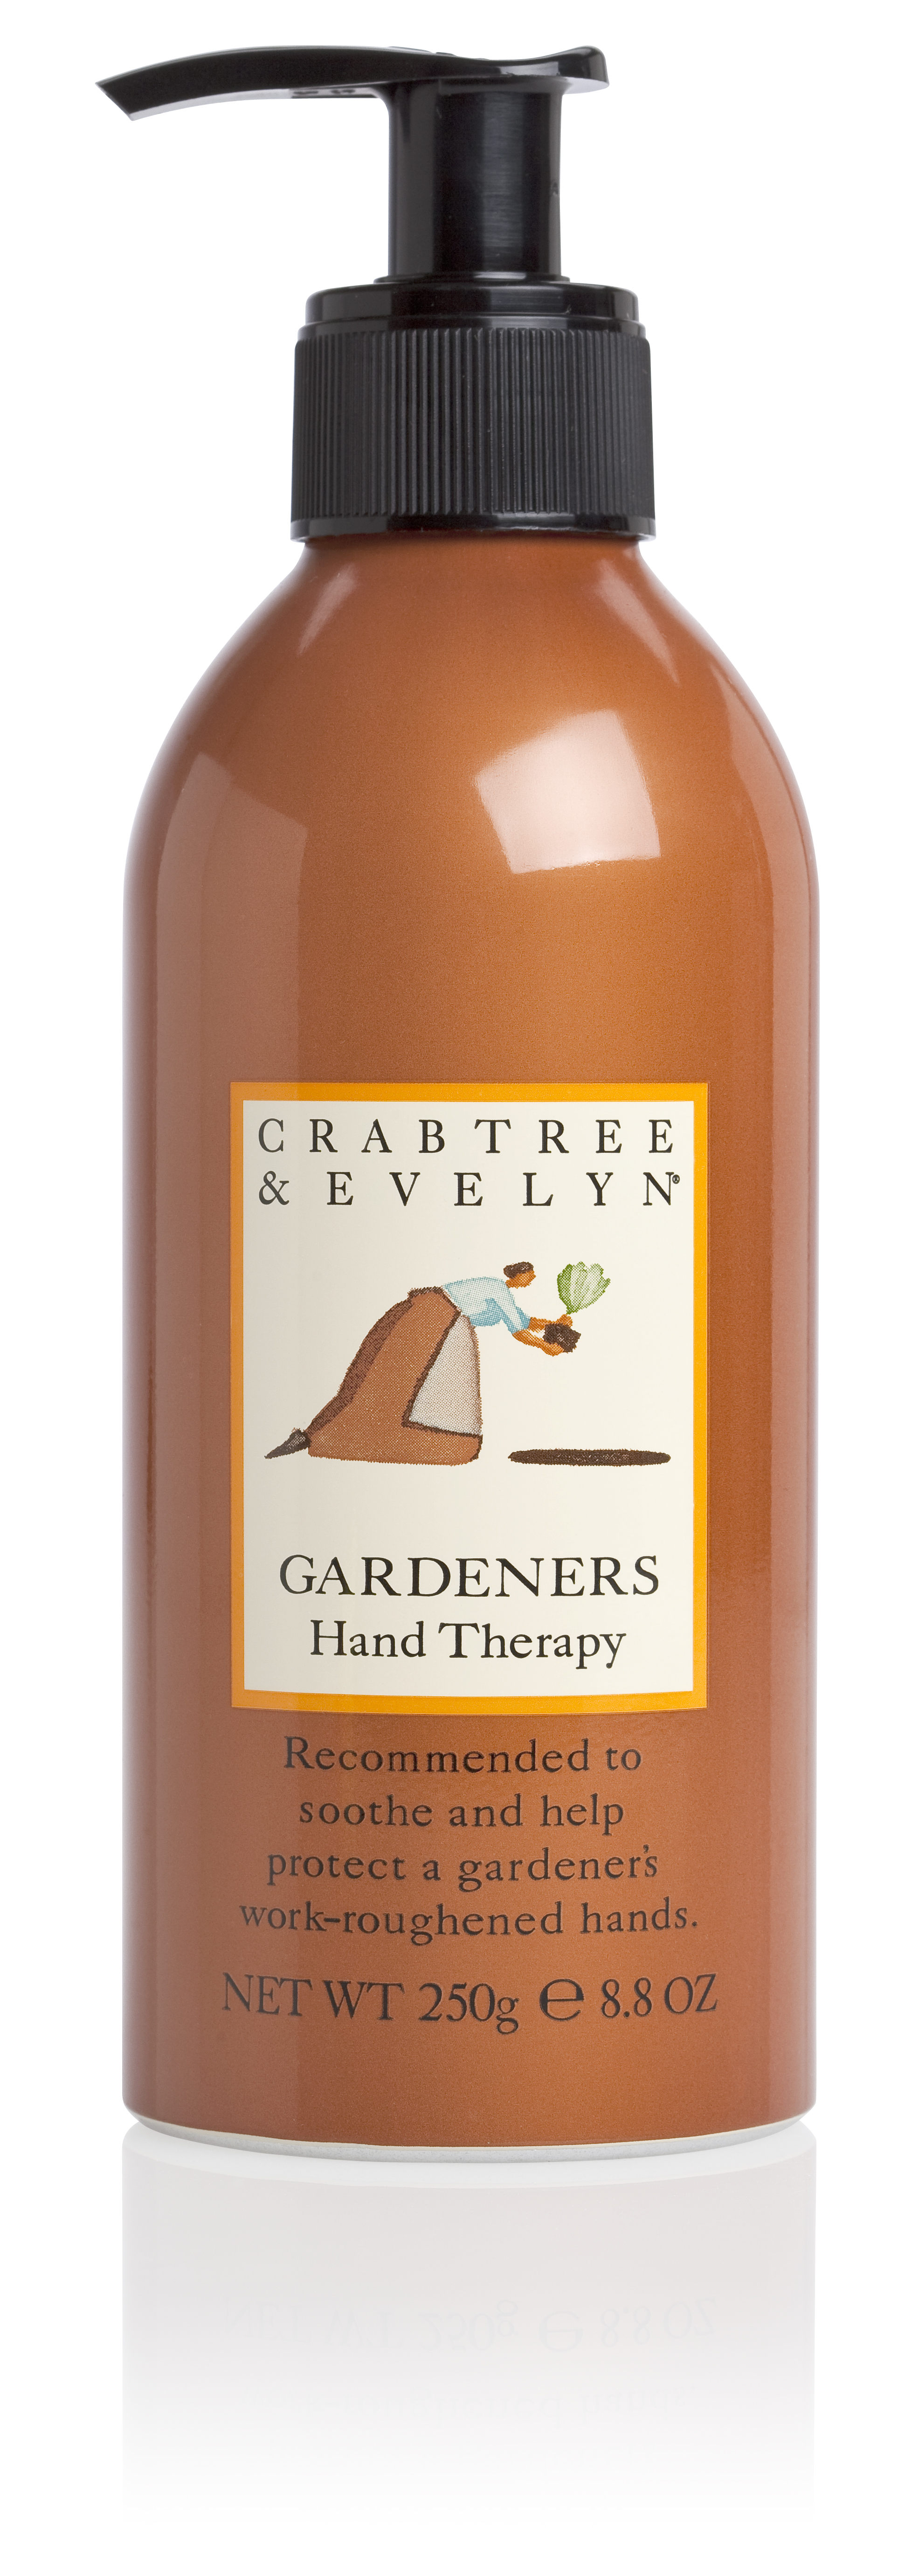 Gardeners Hand Therapy Crabtree Evelyn